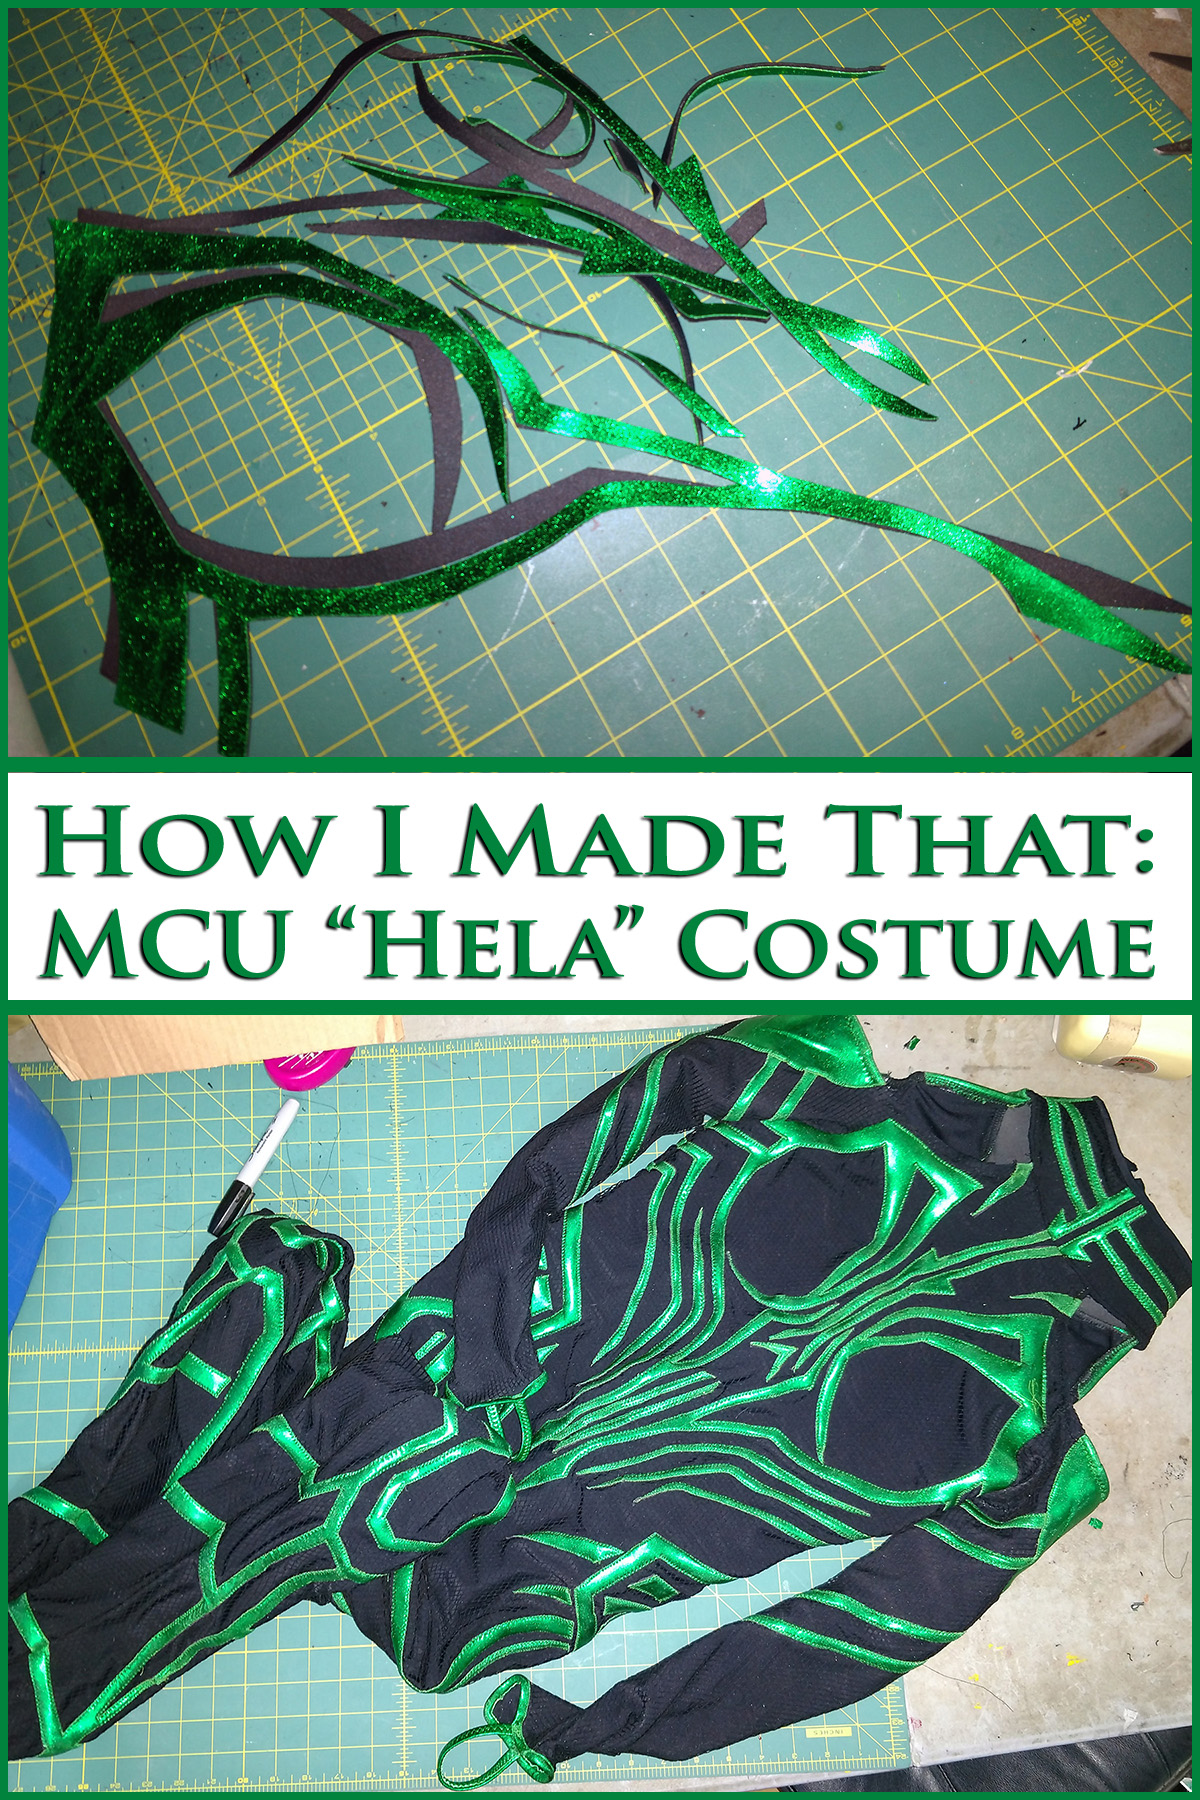 """A three part compilation image. On top, Several long wispy pieces of green foil spandex are laid out on a green work surface. On bottom, a completed costume. The two photos are separated by green text on a white background that says """"How I Made That: MCU Hela Costume""""."""